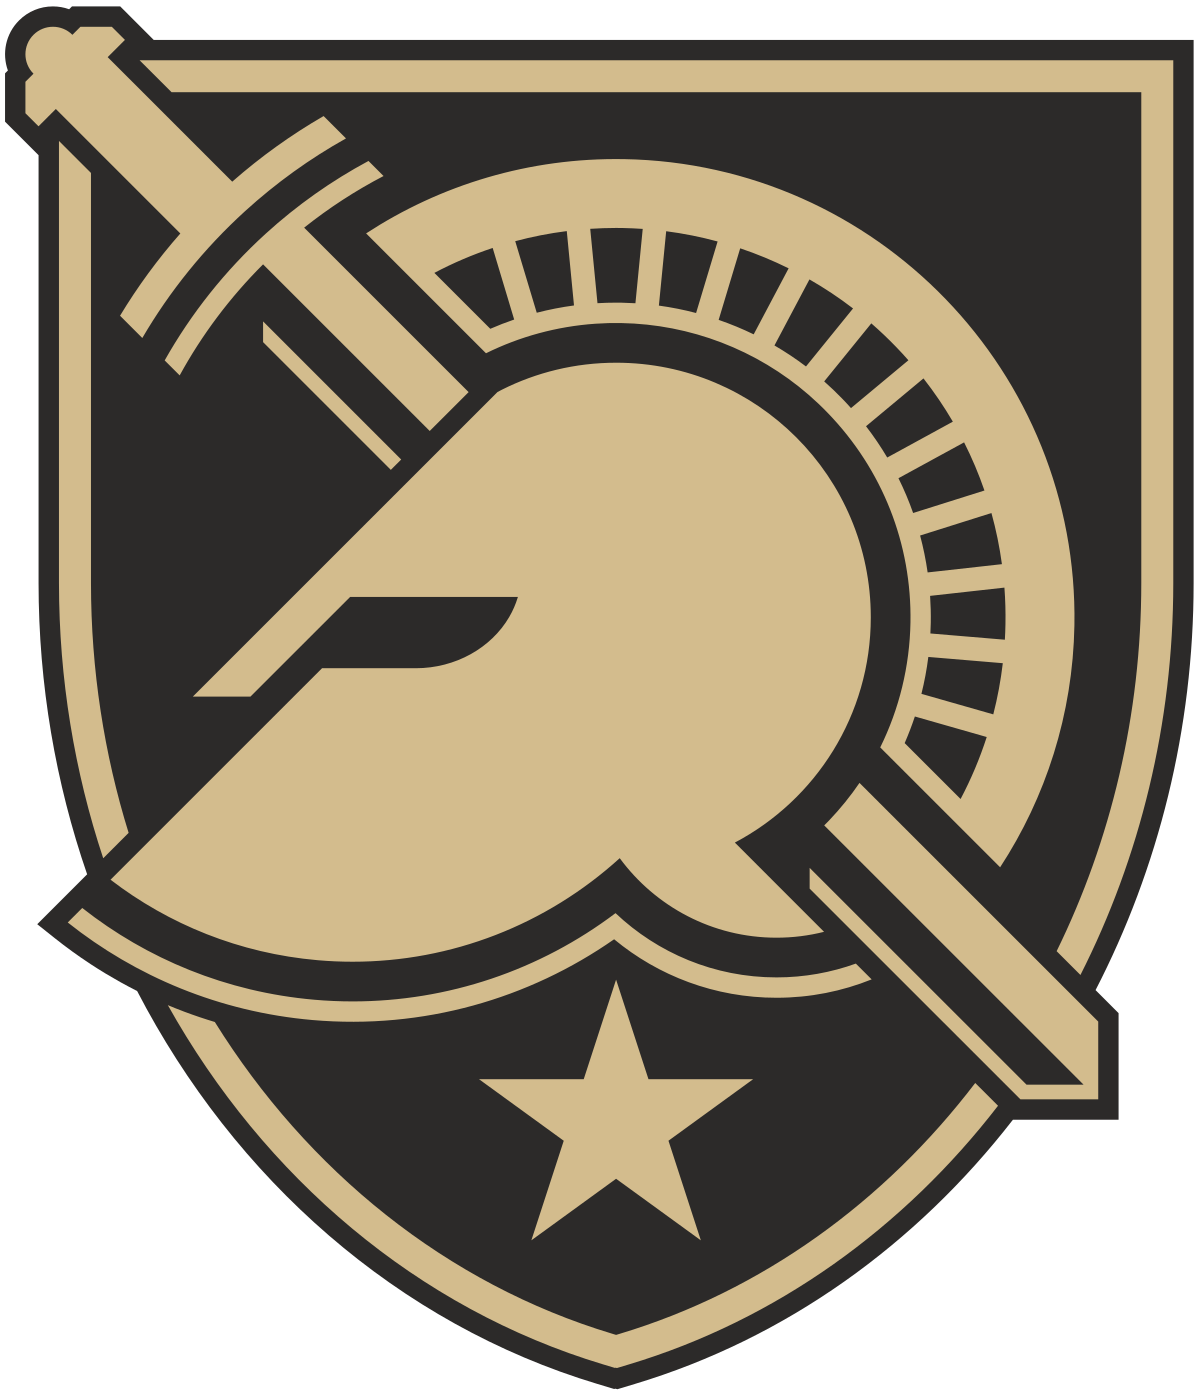 military logo, army black knights wikipedia #25285